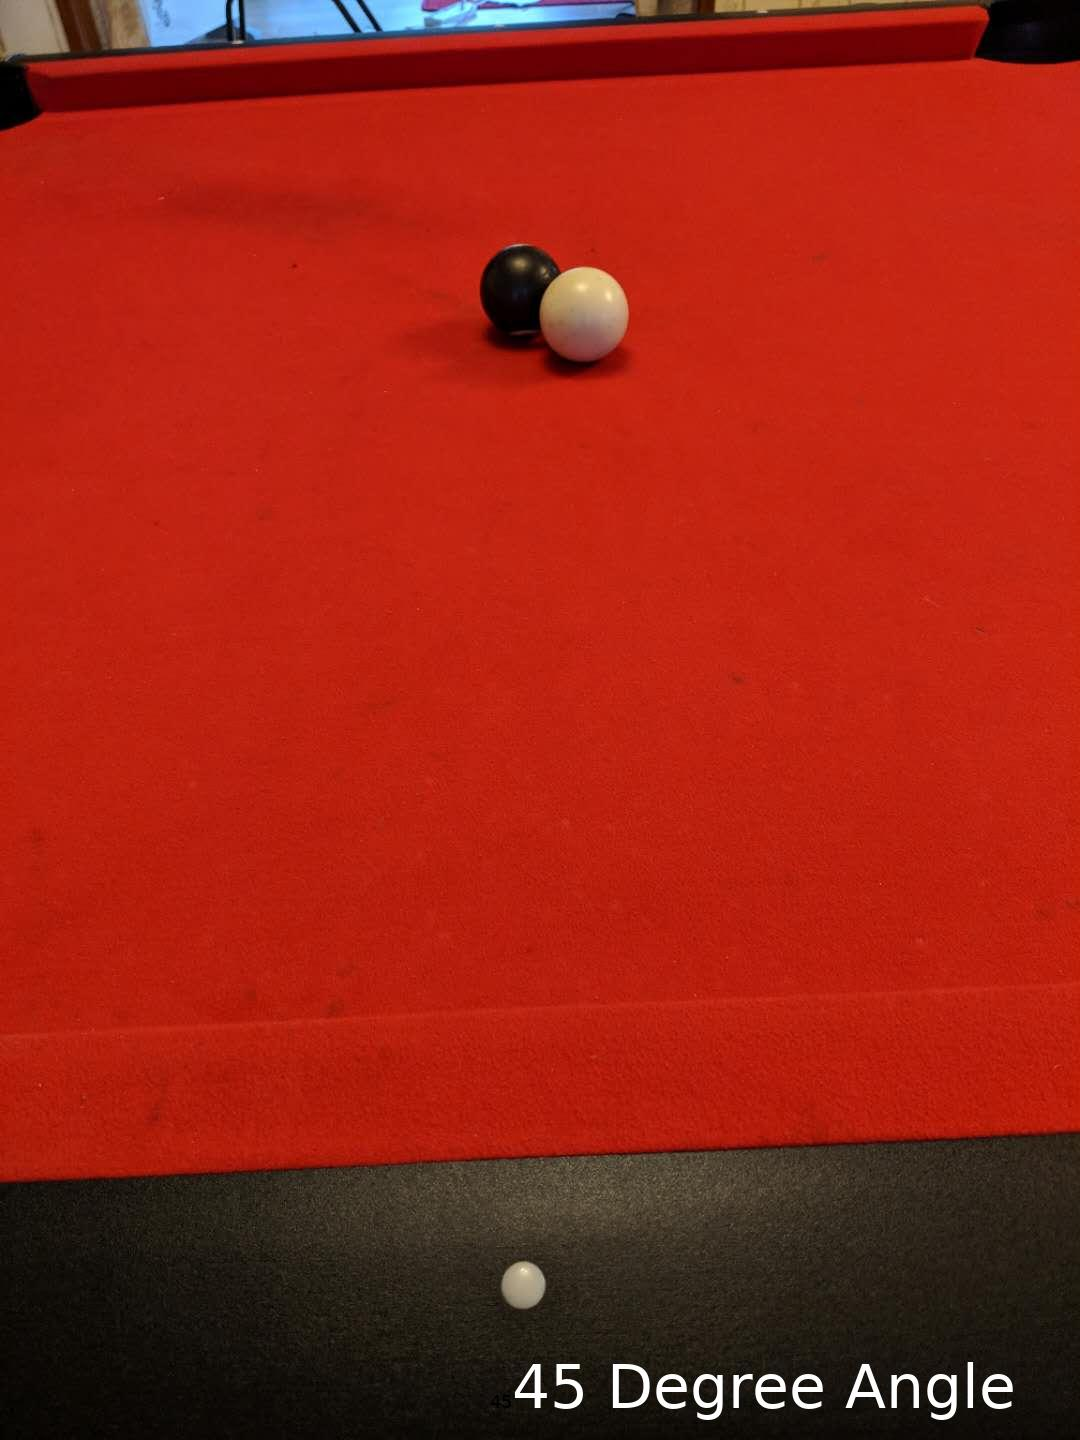 How To Set Up Pool Balls Quora >> Show How To Calculate What Angle To Hit A Pool Ball With Real Photos